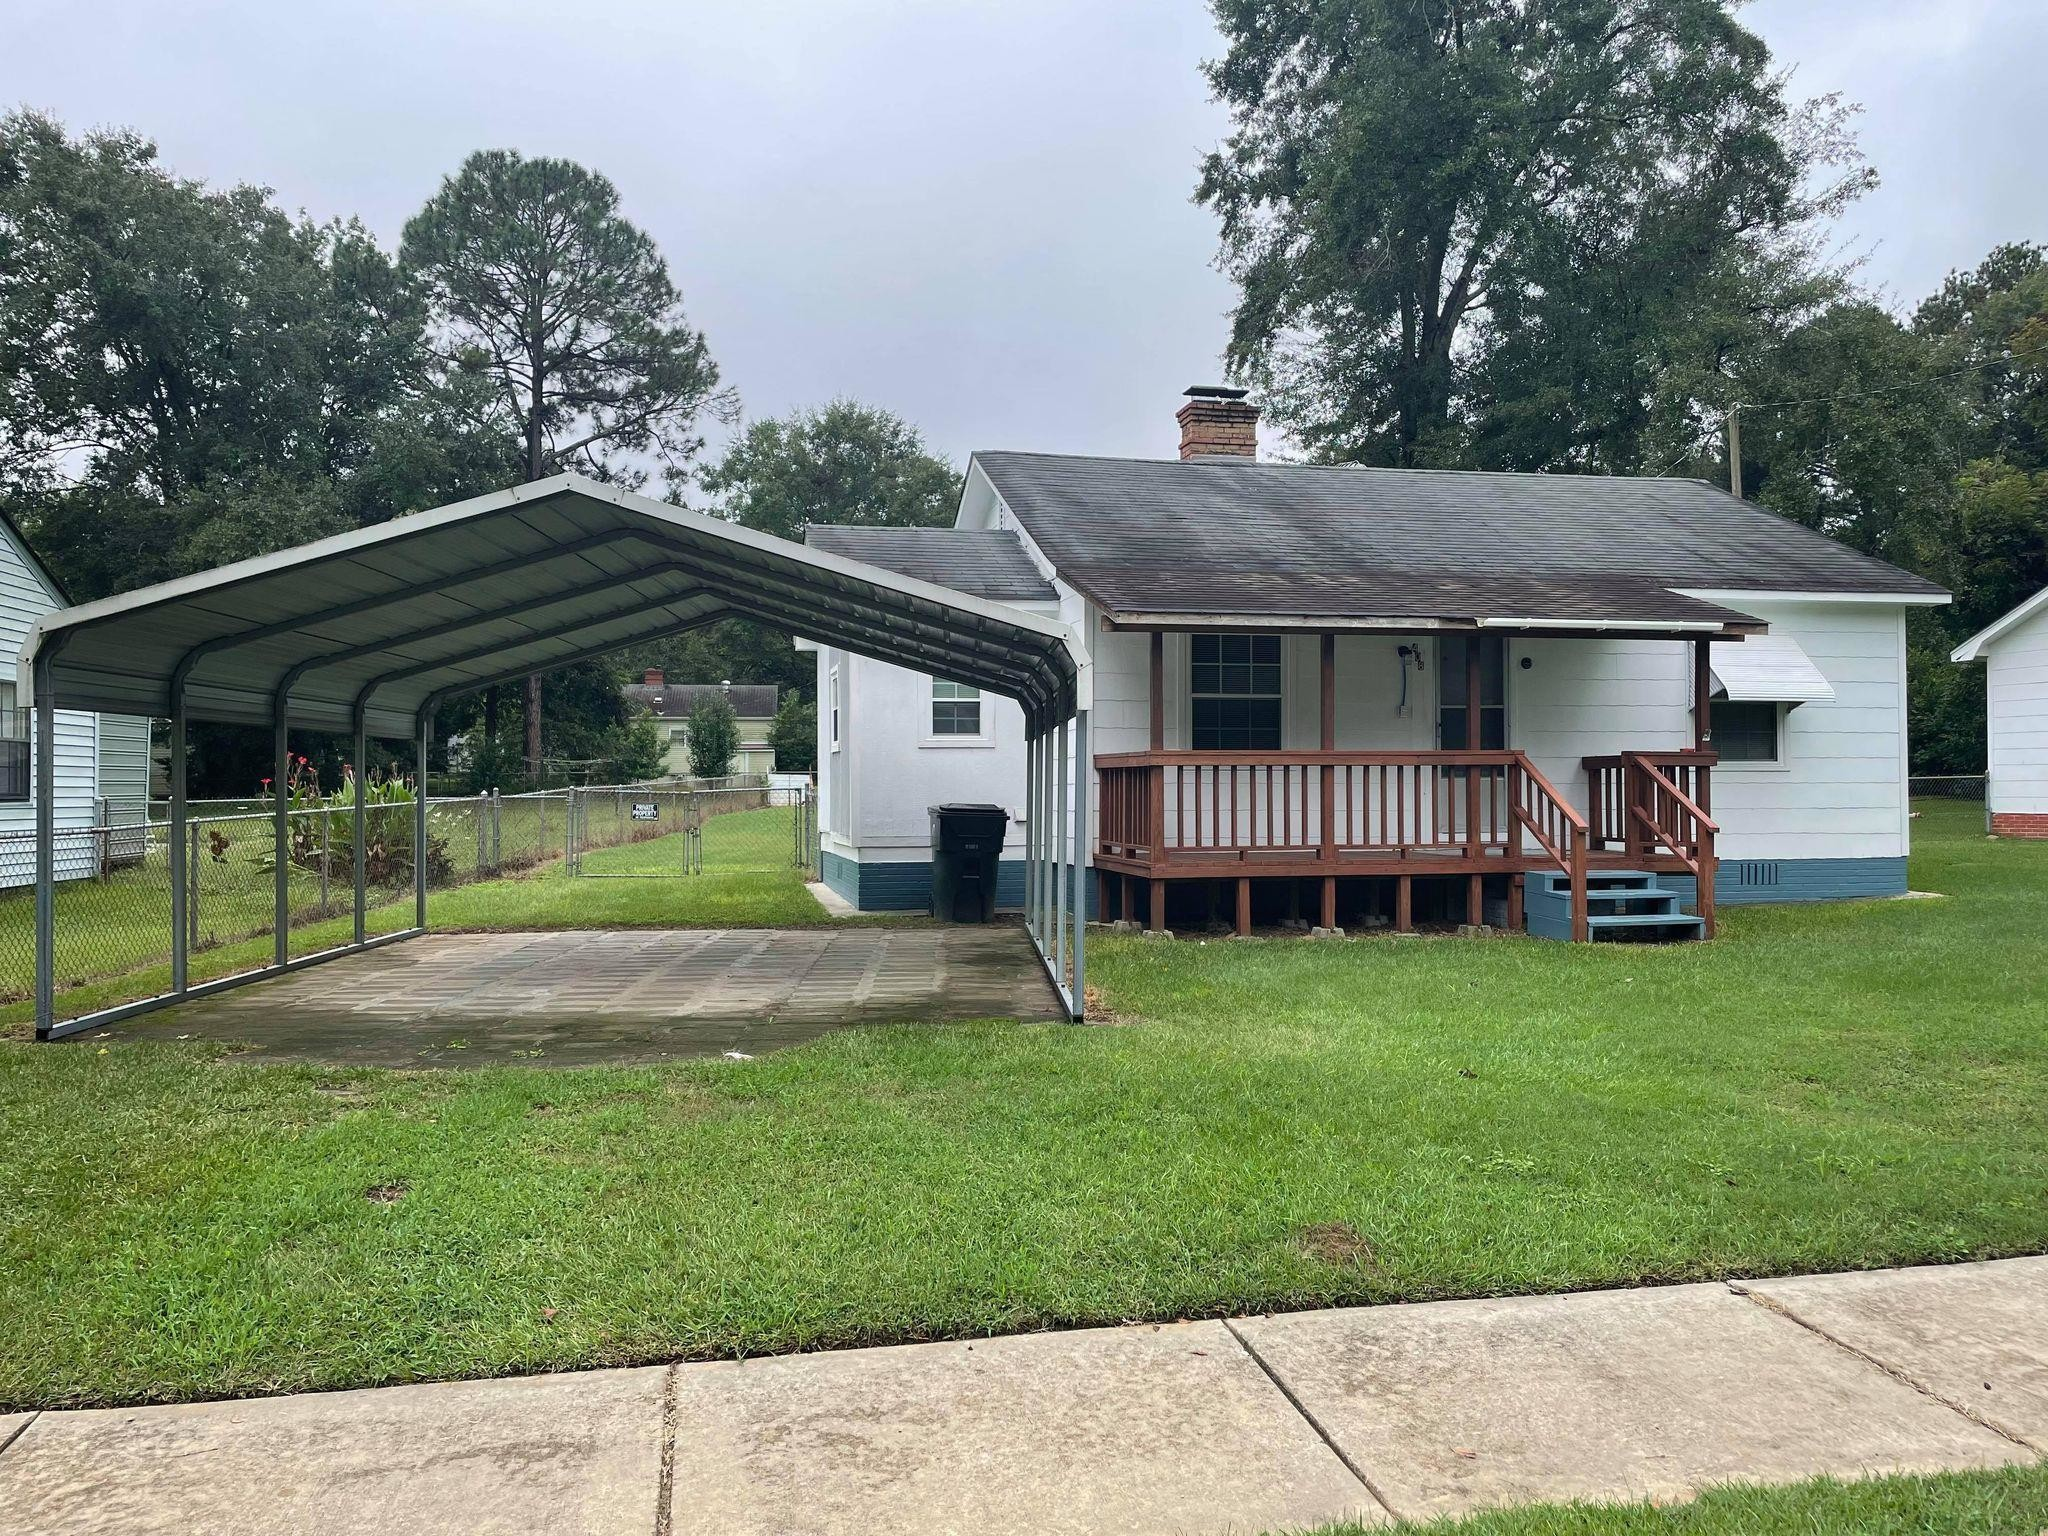 2-Bedroom House In Robins Manor